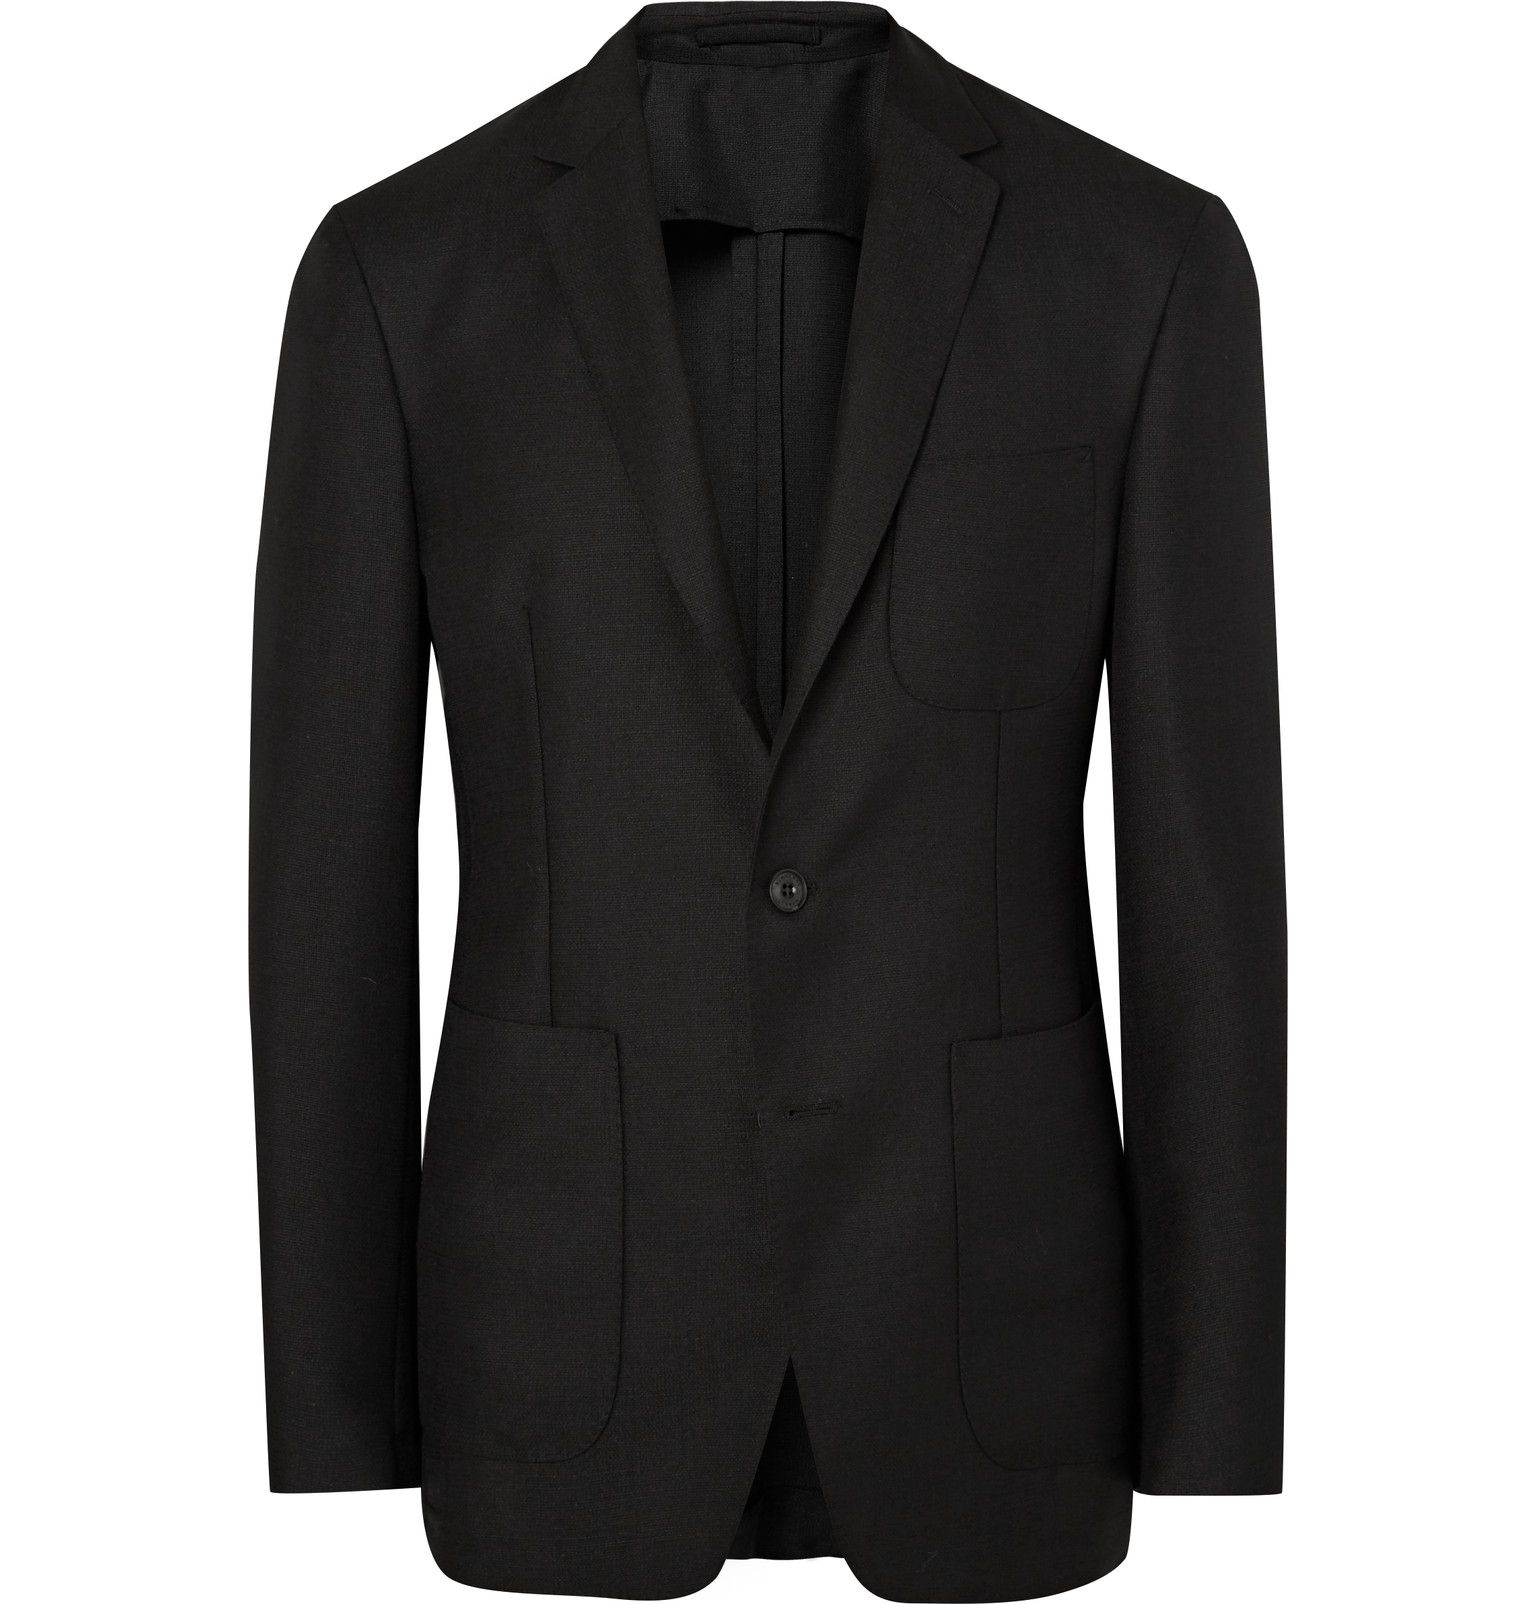 Versatility is key when it comes to smart dressing, and <a href='http://www.mrporter.com/mens/Designers/Burberry_London'>Burberry</a>'s black blazer is a veritable choice for any season. This neatly tailored piece has been crafted in Italy from mohair and wool-blend hopsack, a lightweight material coveted for its exceptional breathability and wrinkle resistance. It's only lined through the sleeves to ensure the most comfortable fit, even in warmer climes. Wear yours with chinos at the…